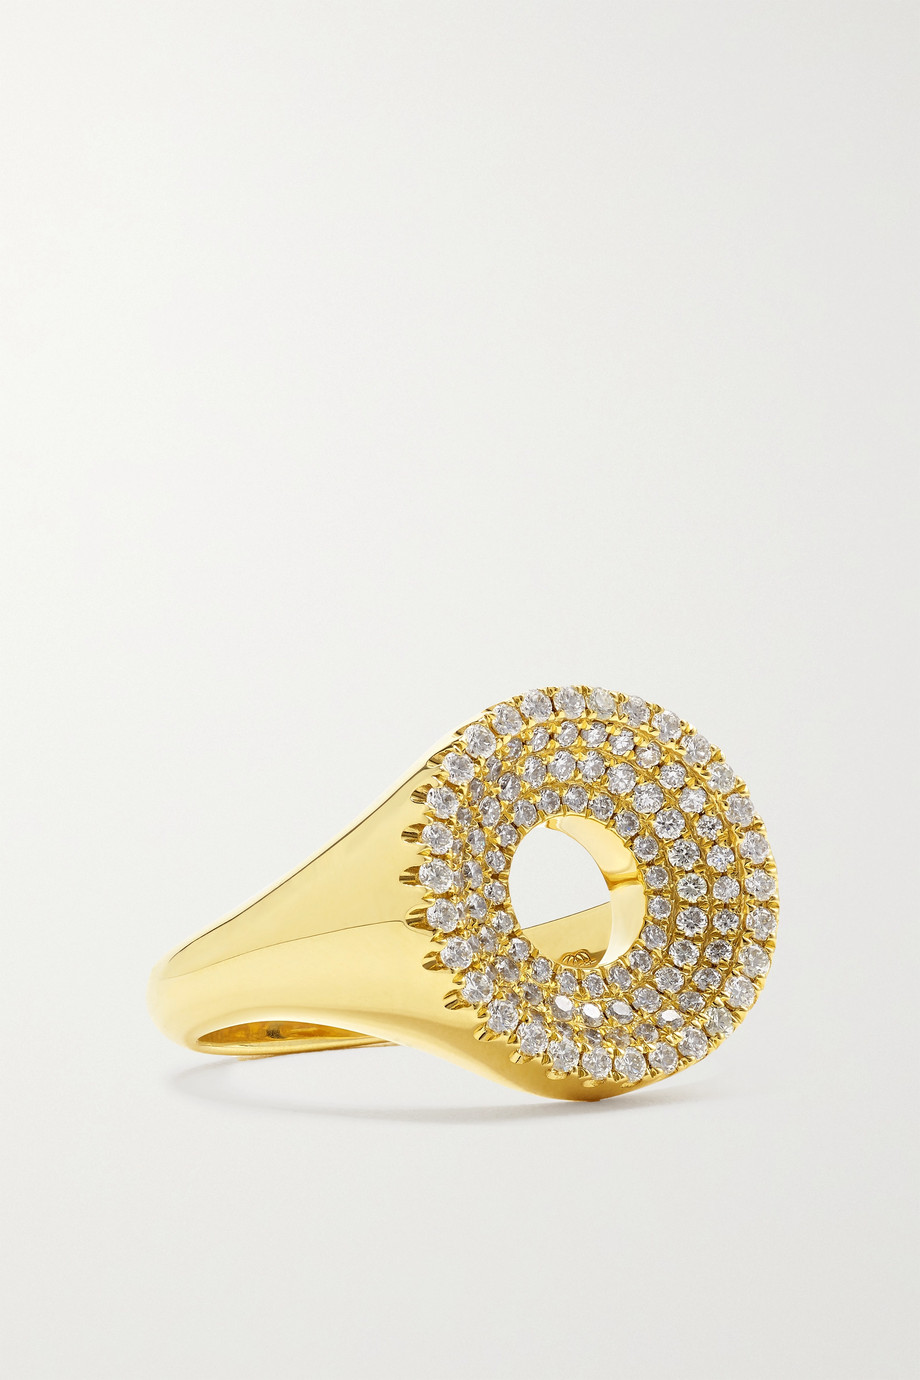 State Property Drew Ring aus 18 Karat Gold mit Diamanten